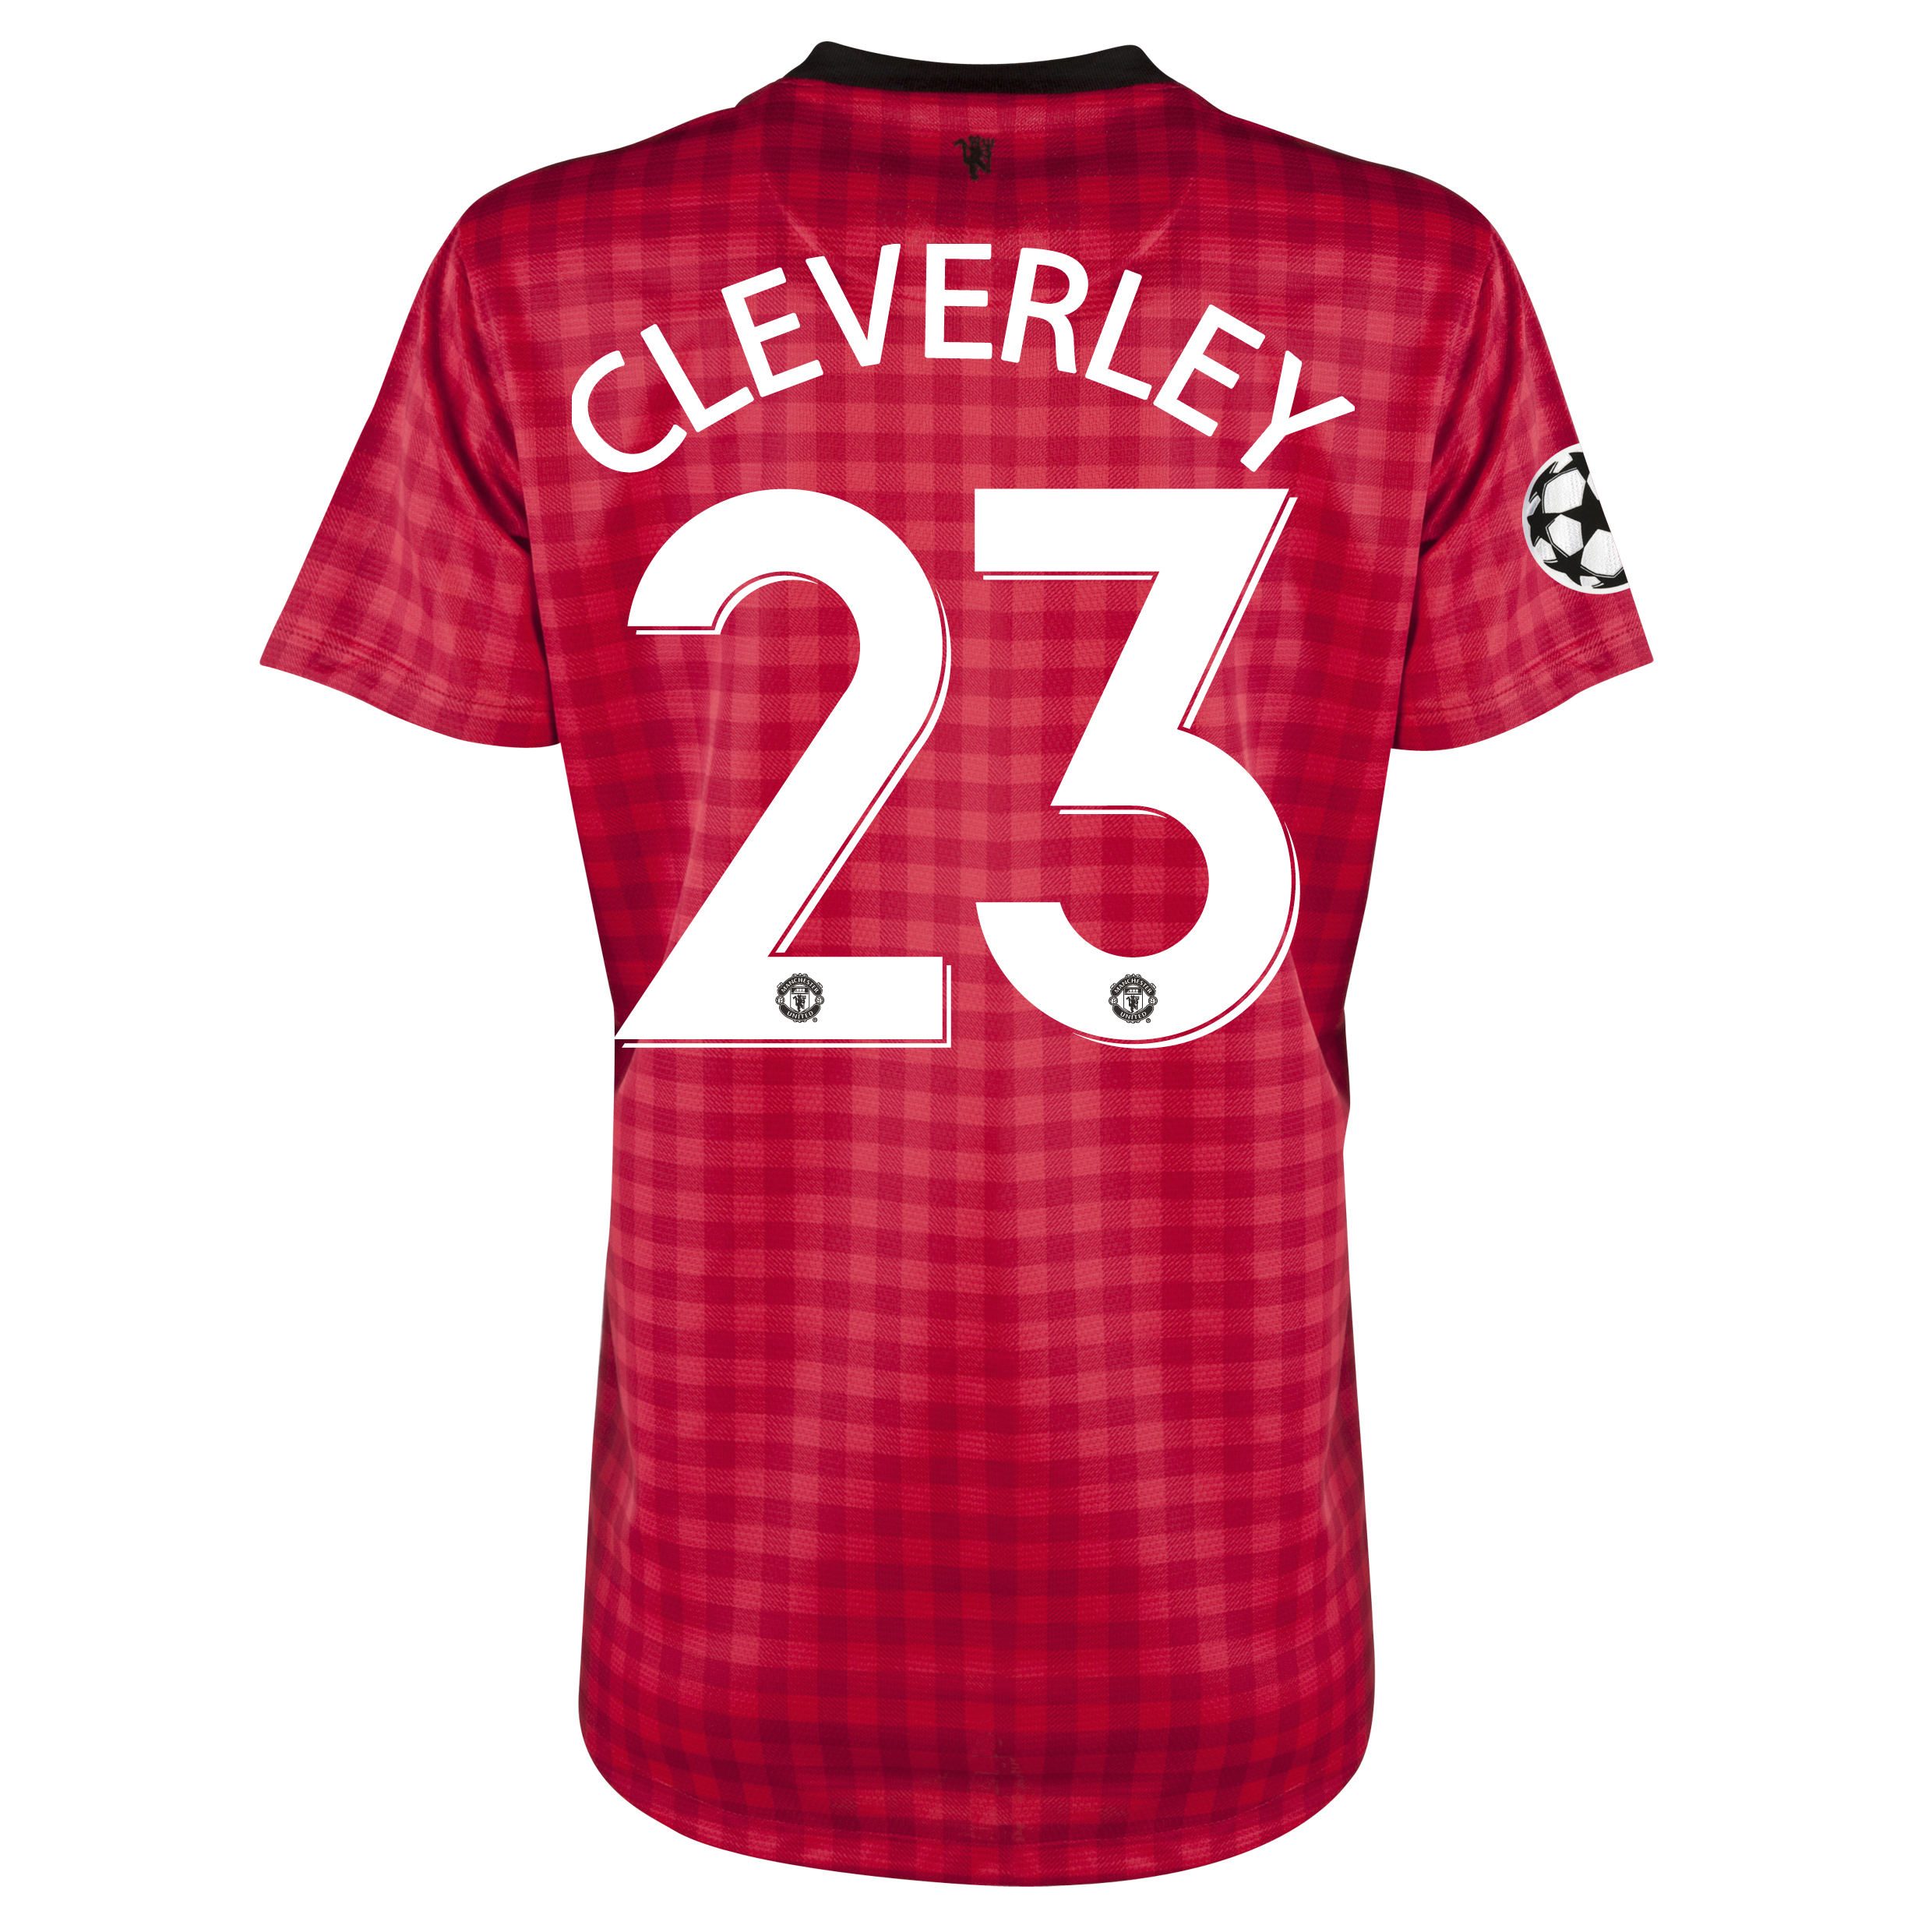 Man United UEFA Champions League Home Shirt 2012/13 - Womens with Cleverley 23 printing